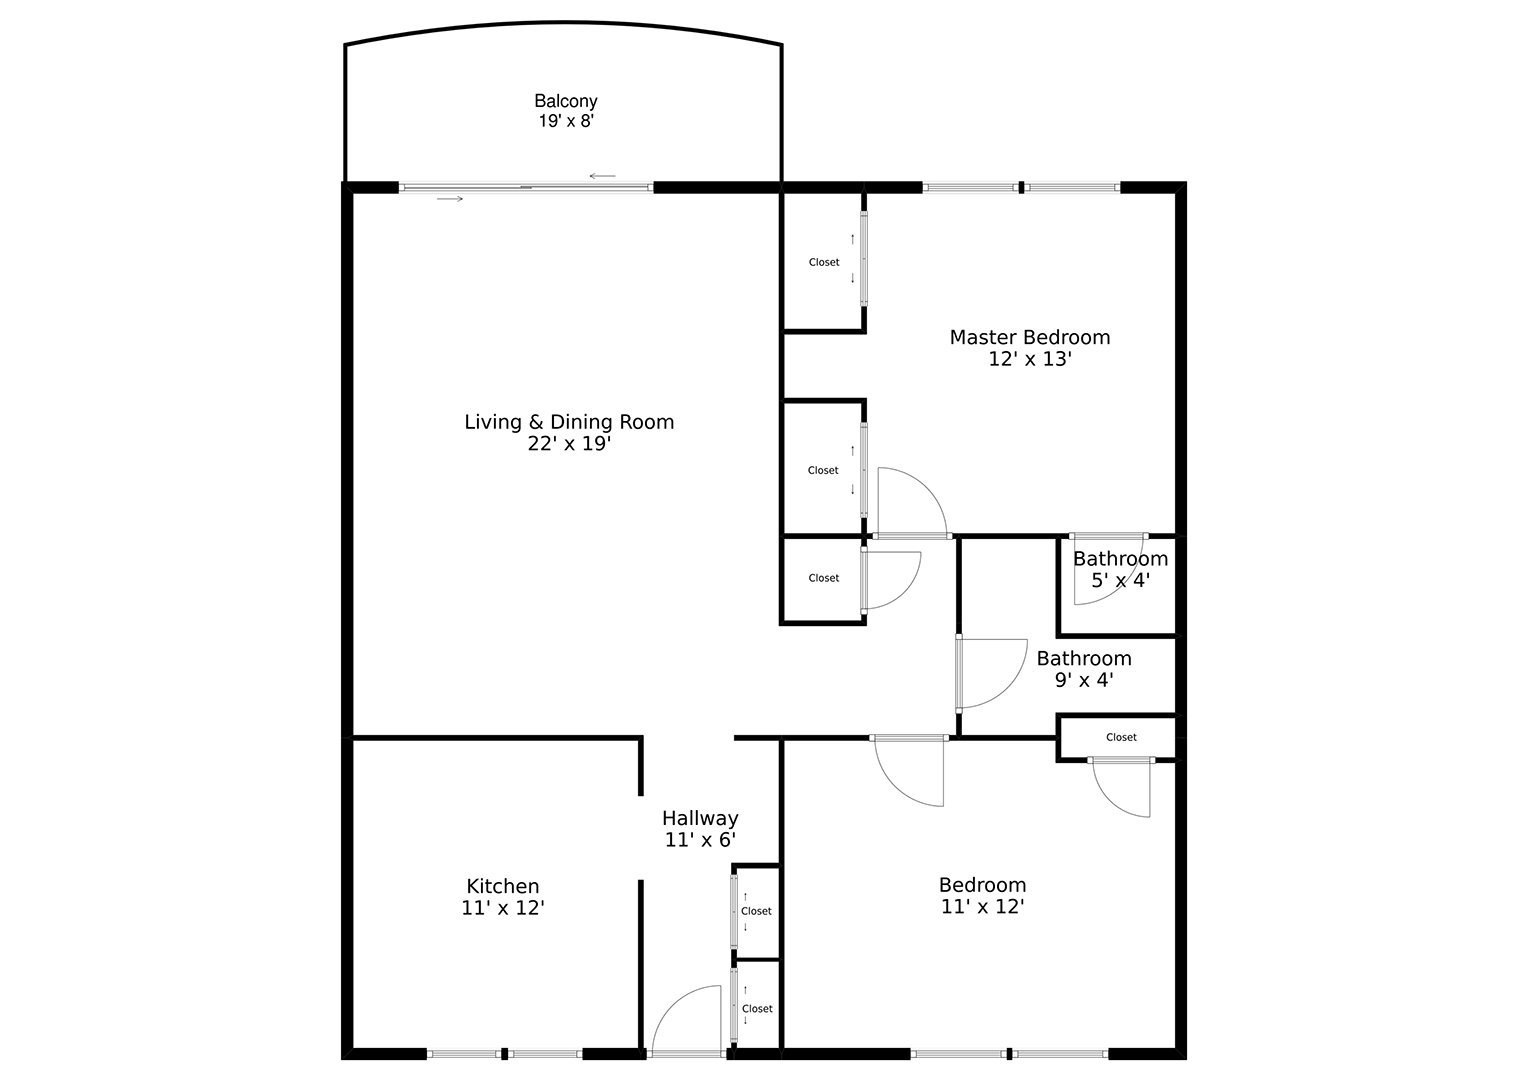 Example of a 2D Floor Plan created by XL Visions